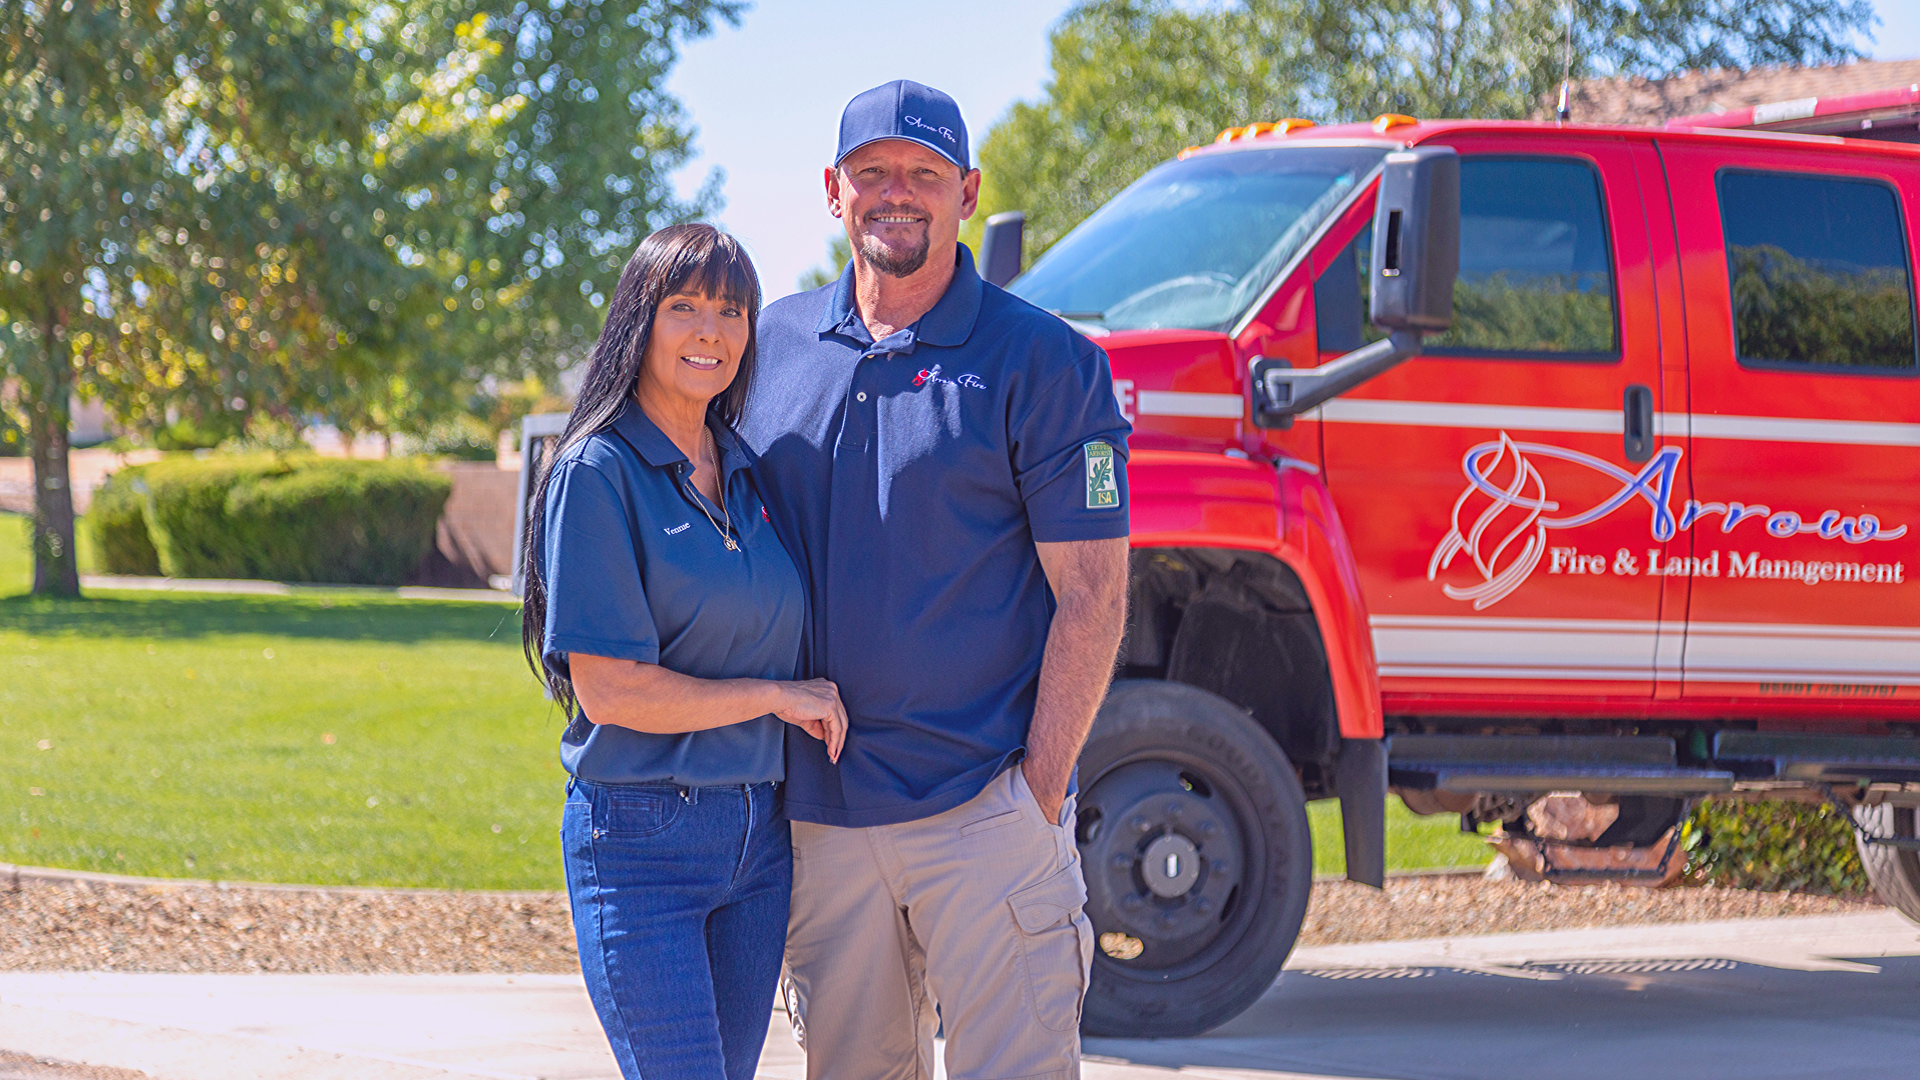 Arizona Fire & Land Management Business Finds Go-To Lender